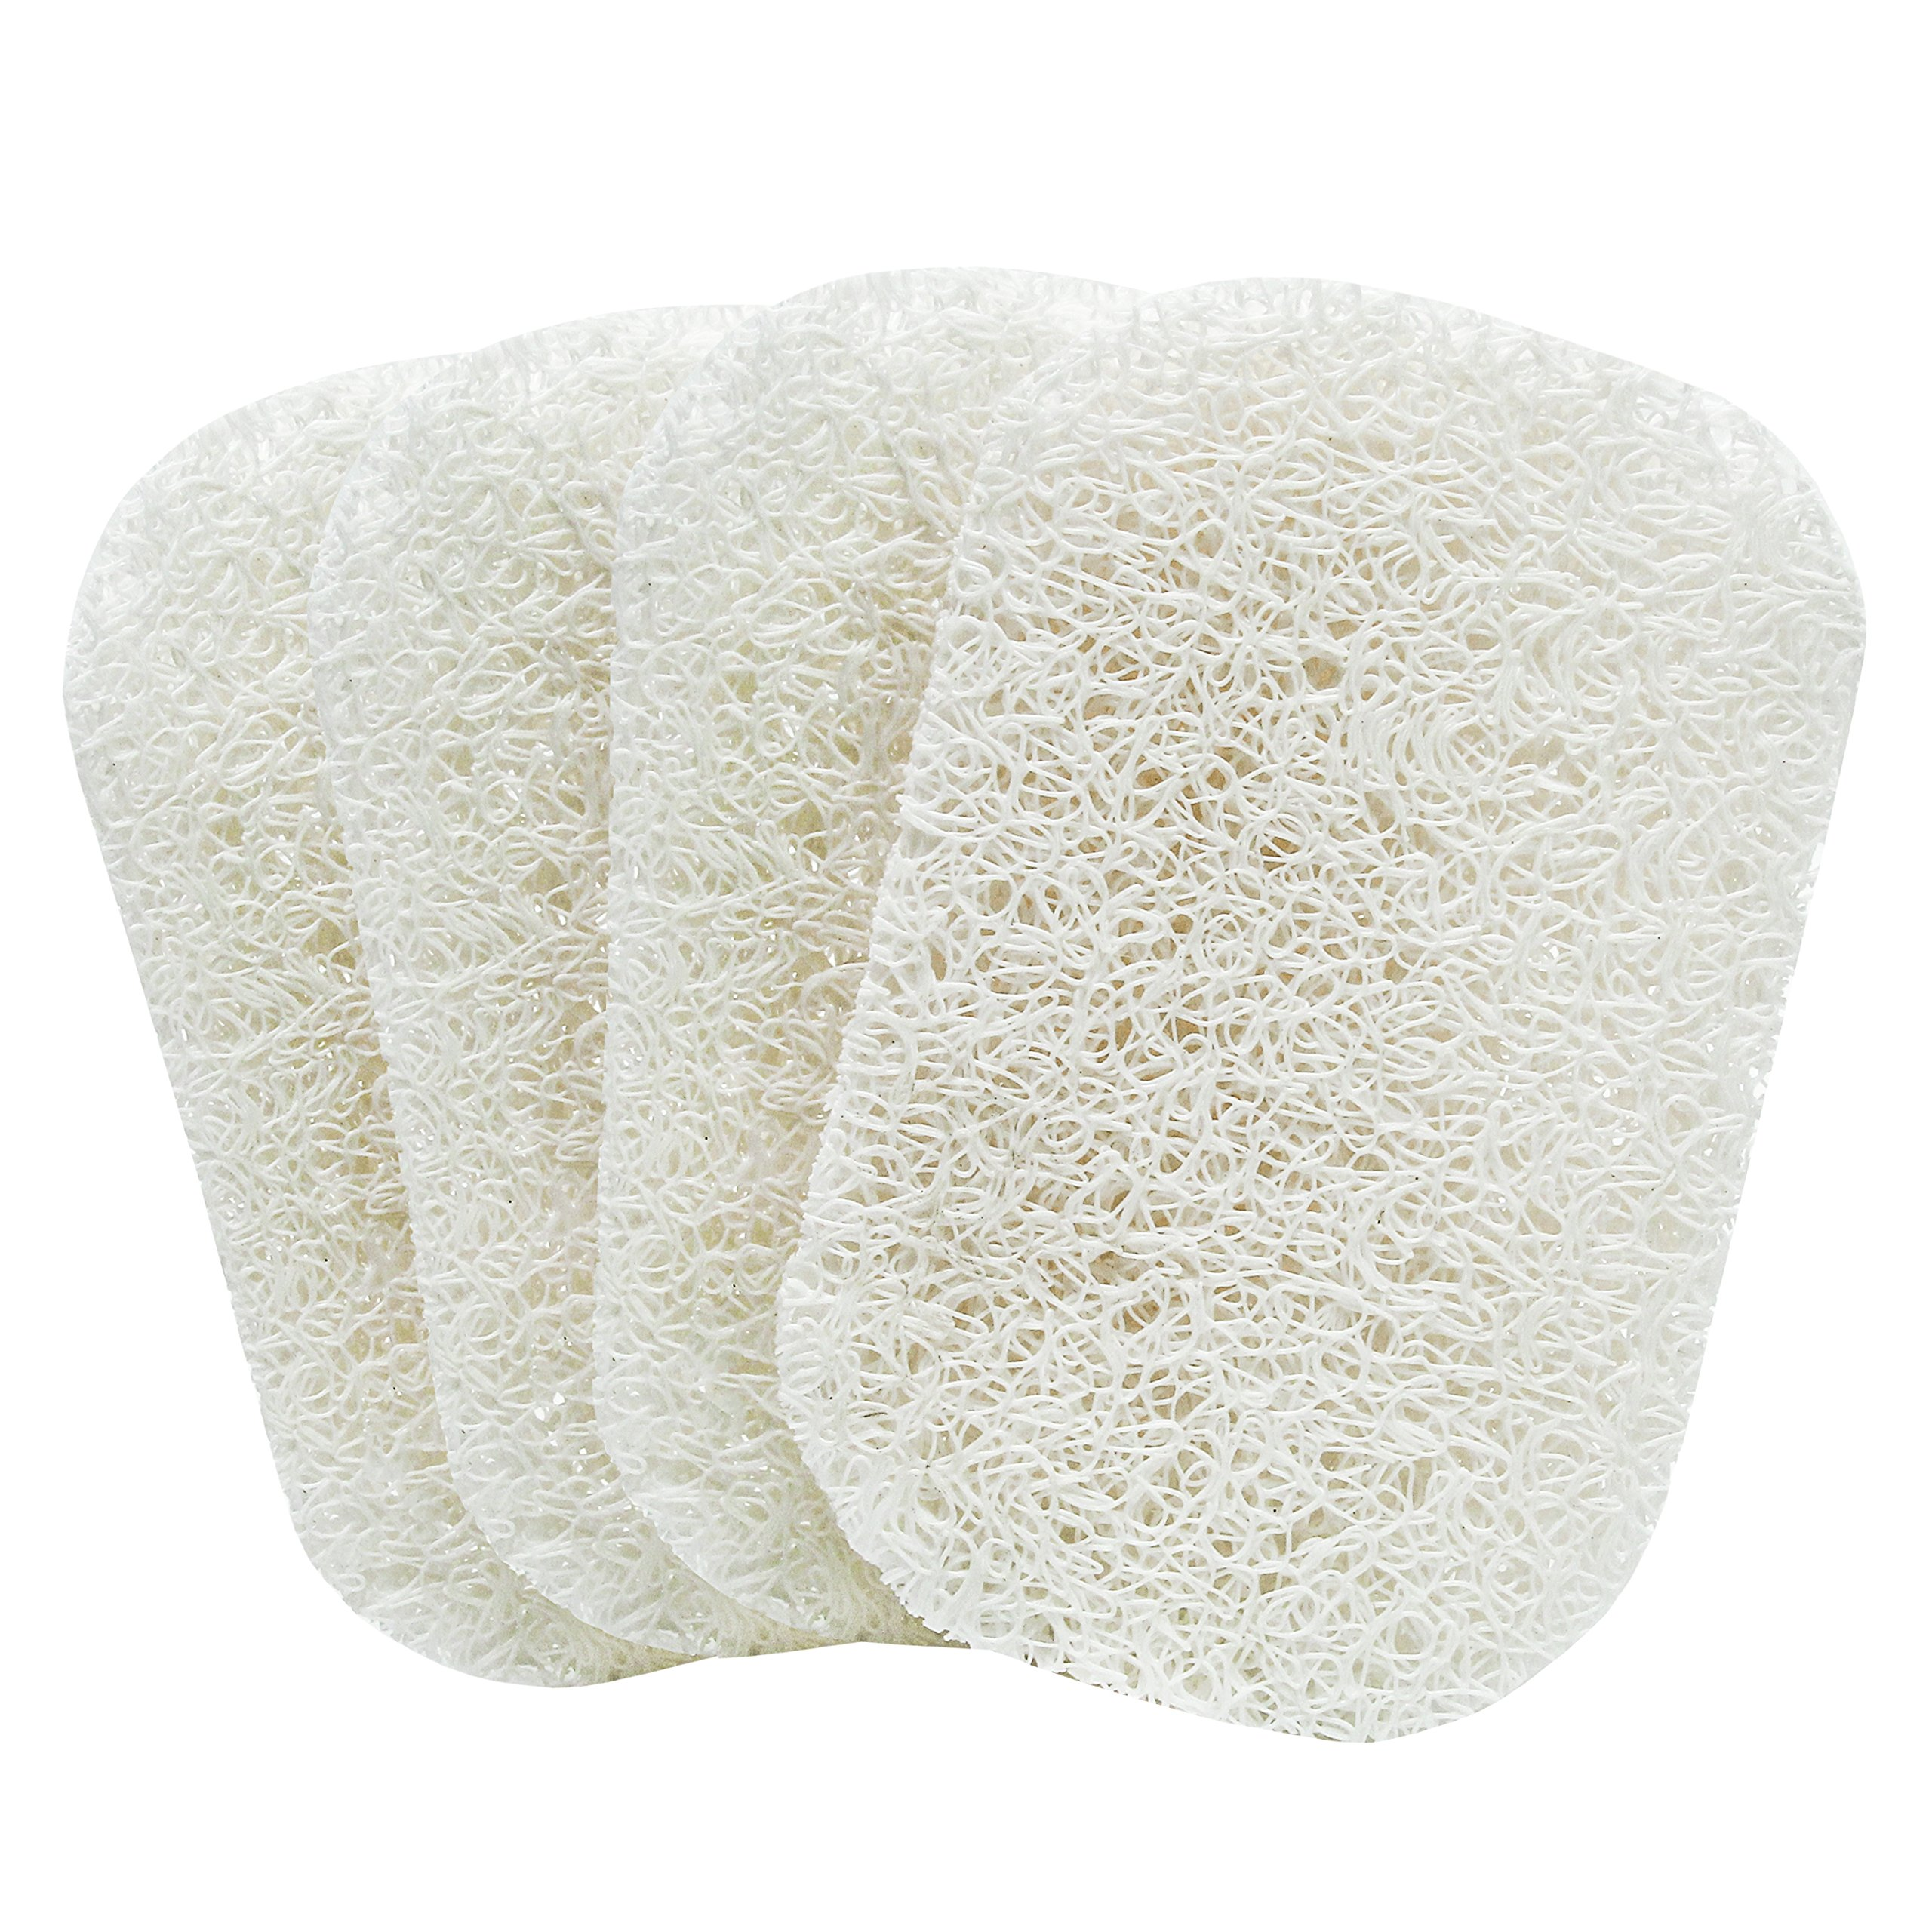 Special Section Hot 6 Pcs Natural Exfoliating Soap Bags Handmade Sisal Soap Bags Natural Sisal Soap Saver Pouch Holder Bath Soap Holder Bags Big Clearance Sale Liquid Soap Dispensers